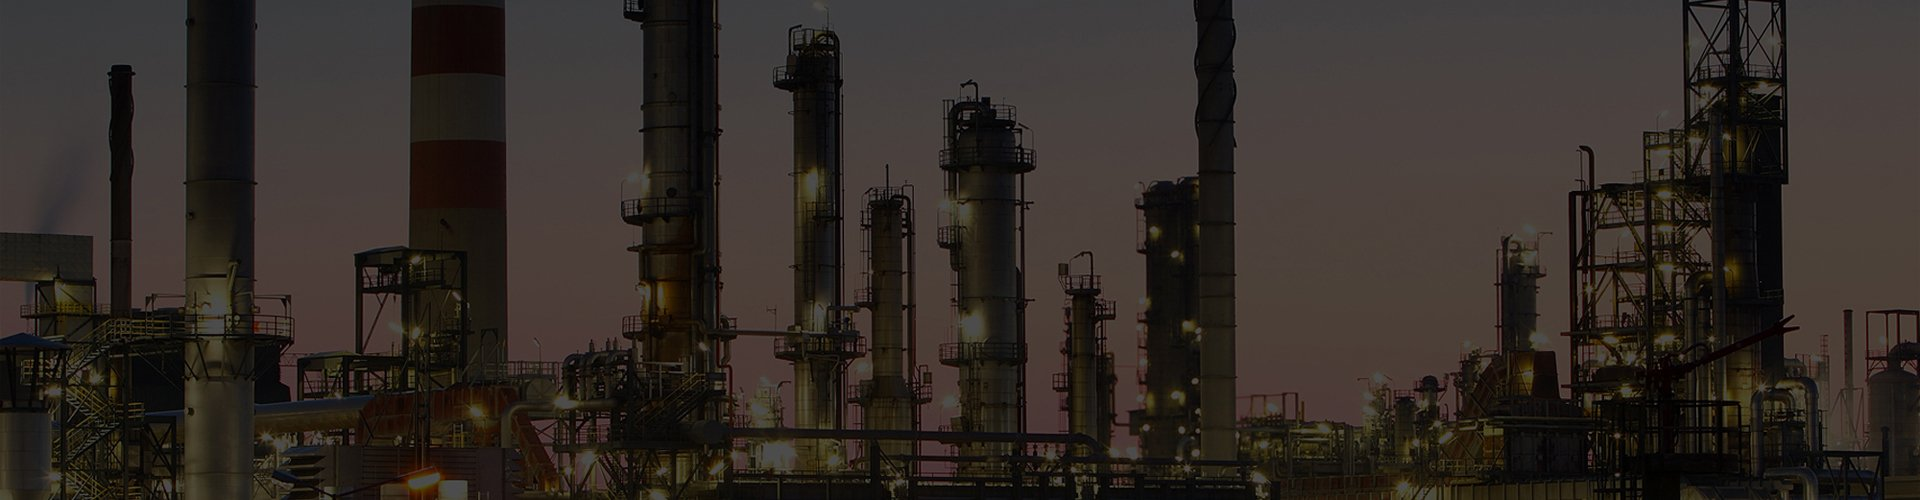 Quality Products And Services To The Oil And Gas Industries